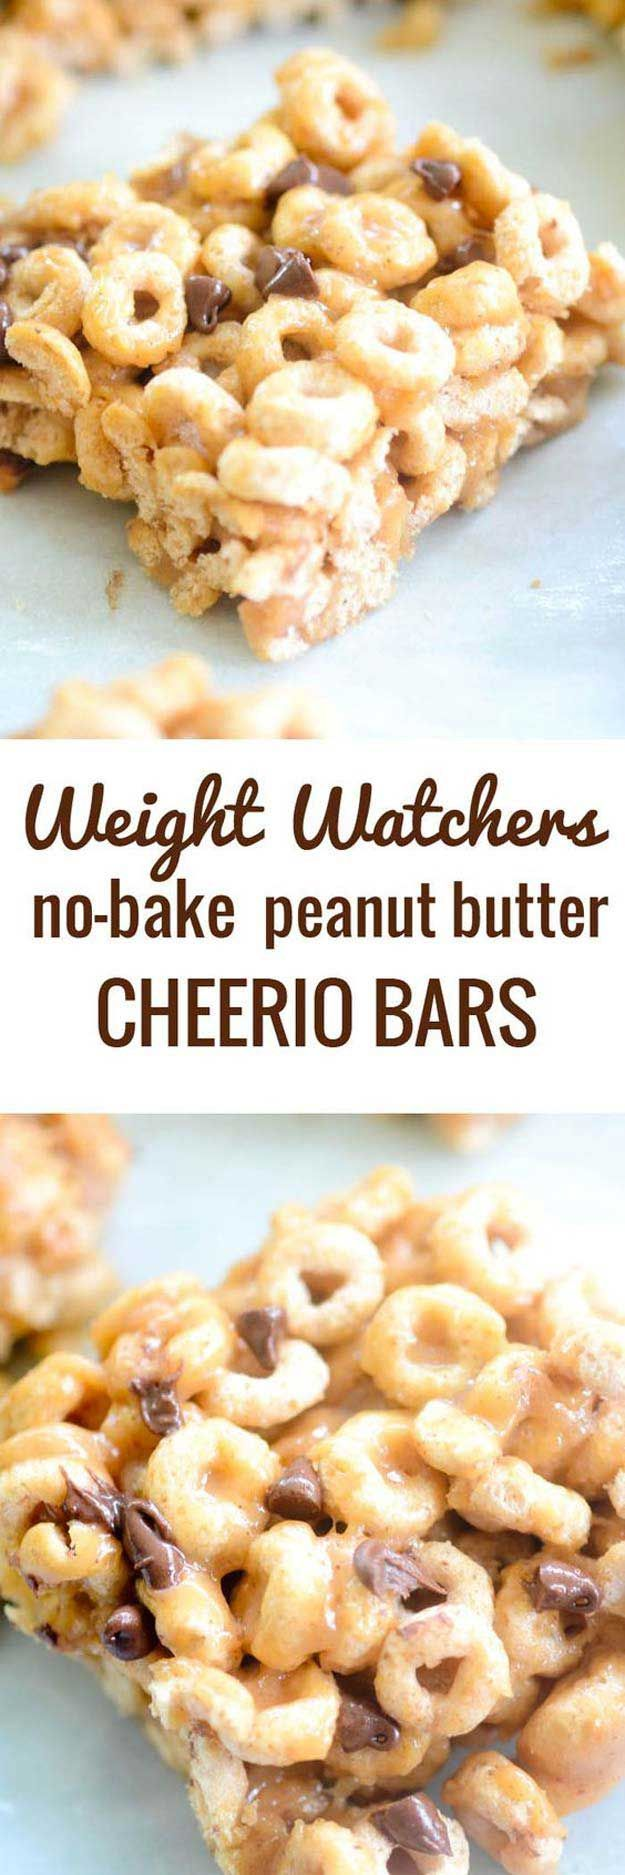 Healthy Desserts To Try Tonight - Weight Watchers No-Bake Peanut Butter Cheerio Bars - Easy And Yummy DIY Health Desserts Under 100 Calories To Try Tonight. No Bake Desserts From Scratch You Can Make In A Mug With No Sugar And Easy To Eat Clean. Recipes For Chocolate Desserts For One And Weight Watchers Ideas For Summer, For Fall, And For Winter. Quick Paleo And Low Carb Cookies And Desserts With Fruit You Can Make At Home By Yourself That Are No Guilt, Guilt Free, And Healthy. Loose Weight…